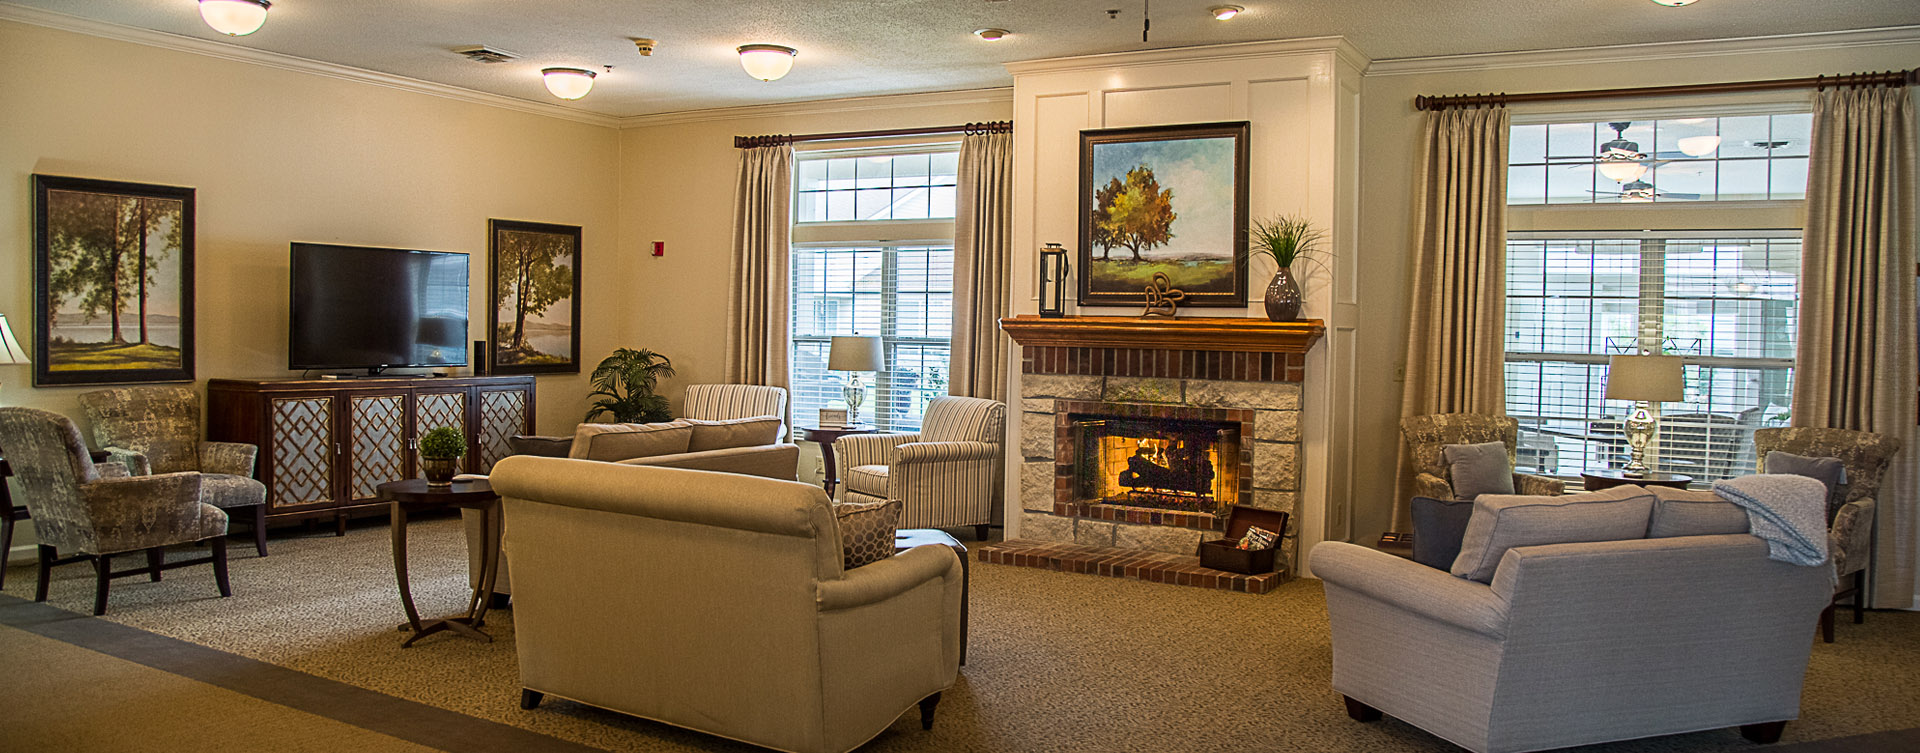 Snooze in your favorite chair in the living room at Bickford of Davenport